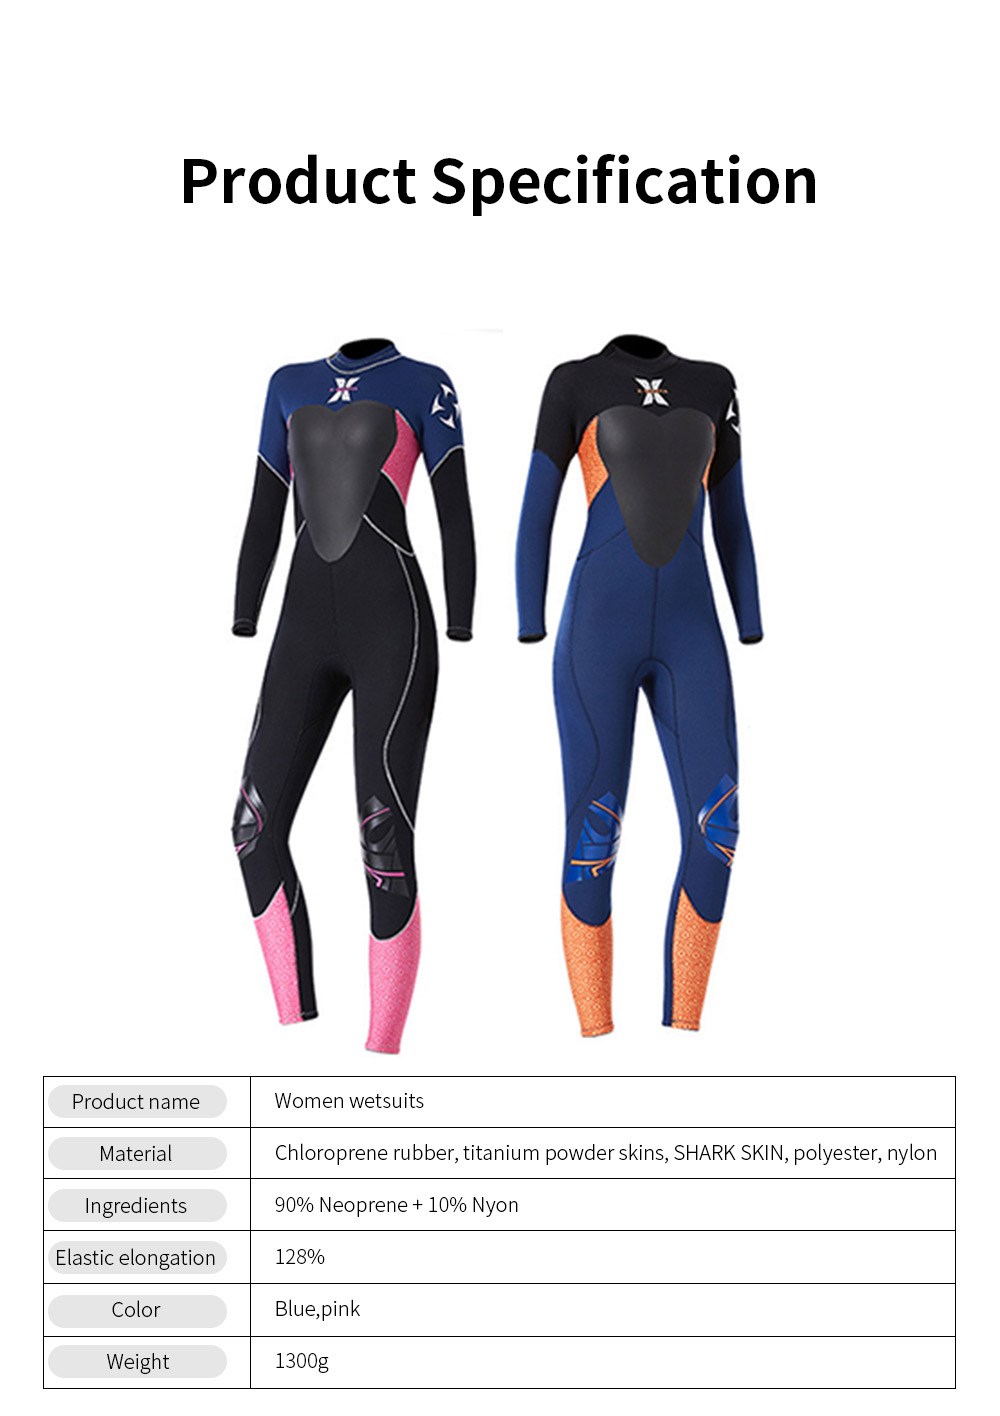 Women Full Body Wetsuits Premium 3mm Neoprene UV Protection Back Zip Diving Suits for Snorkeling Surfing Swimming Suit Jumpsuit 6